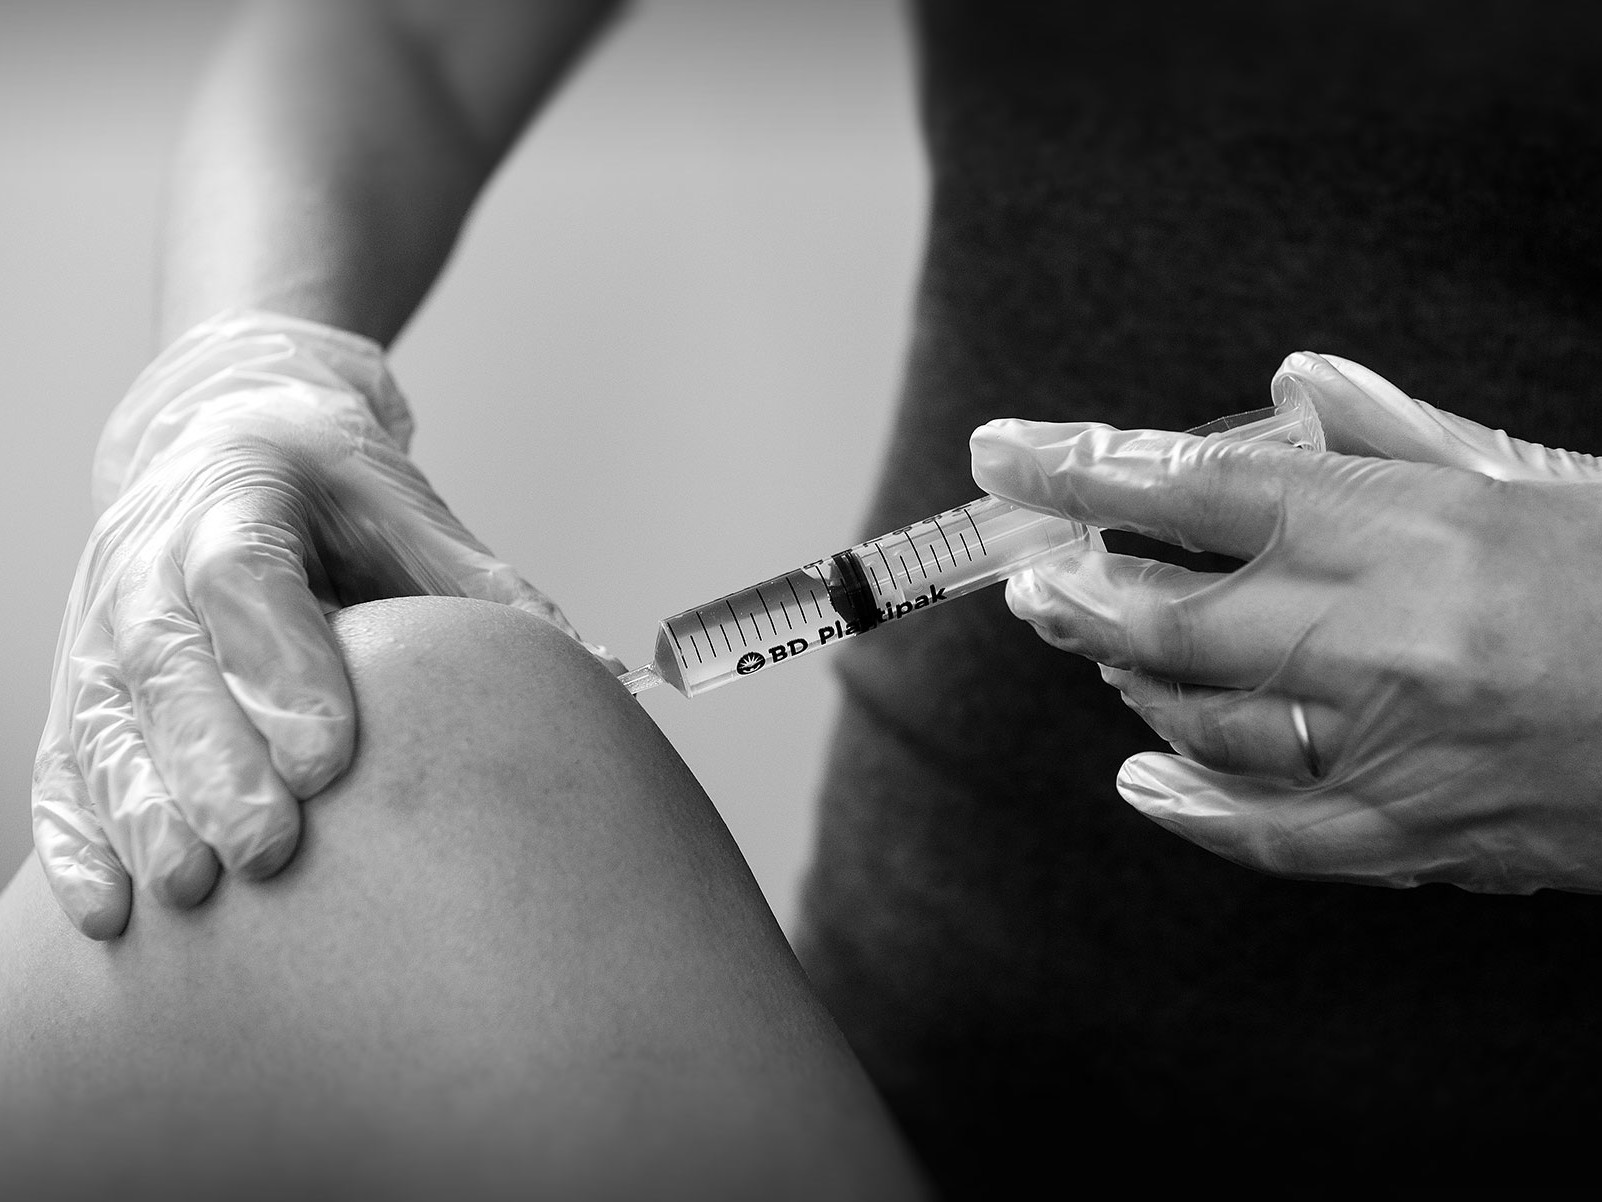 Physio injection therapy